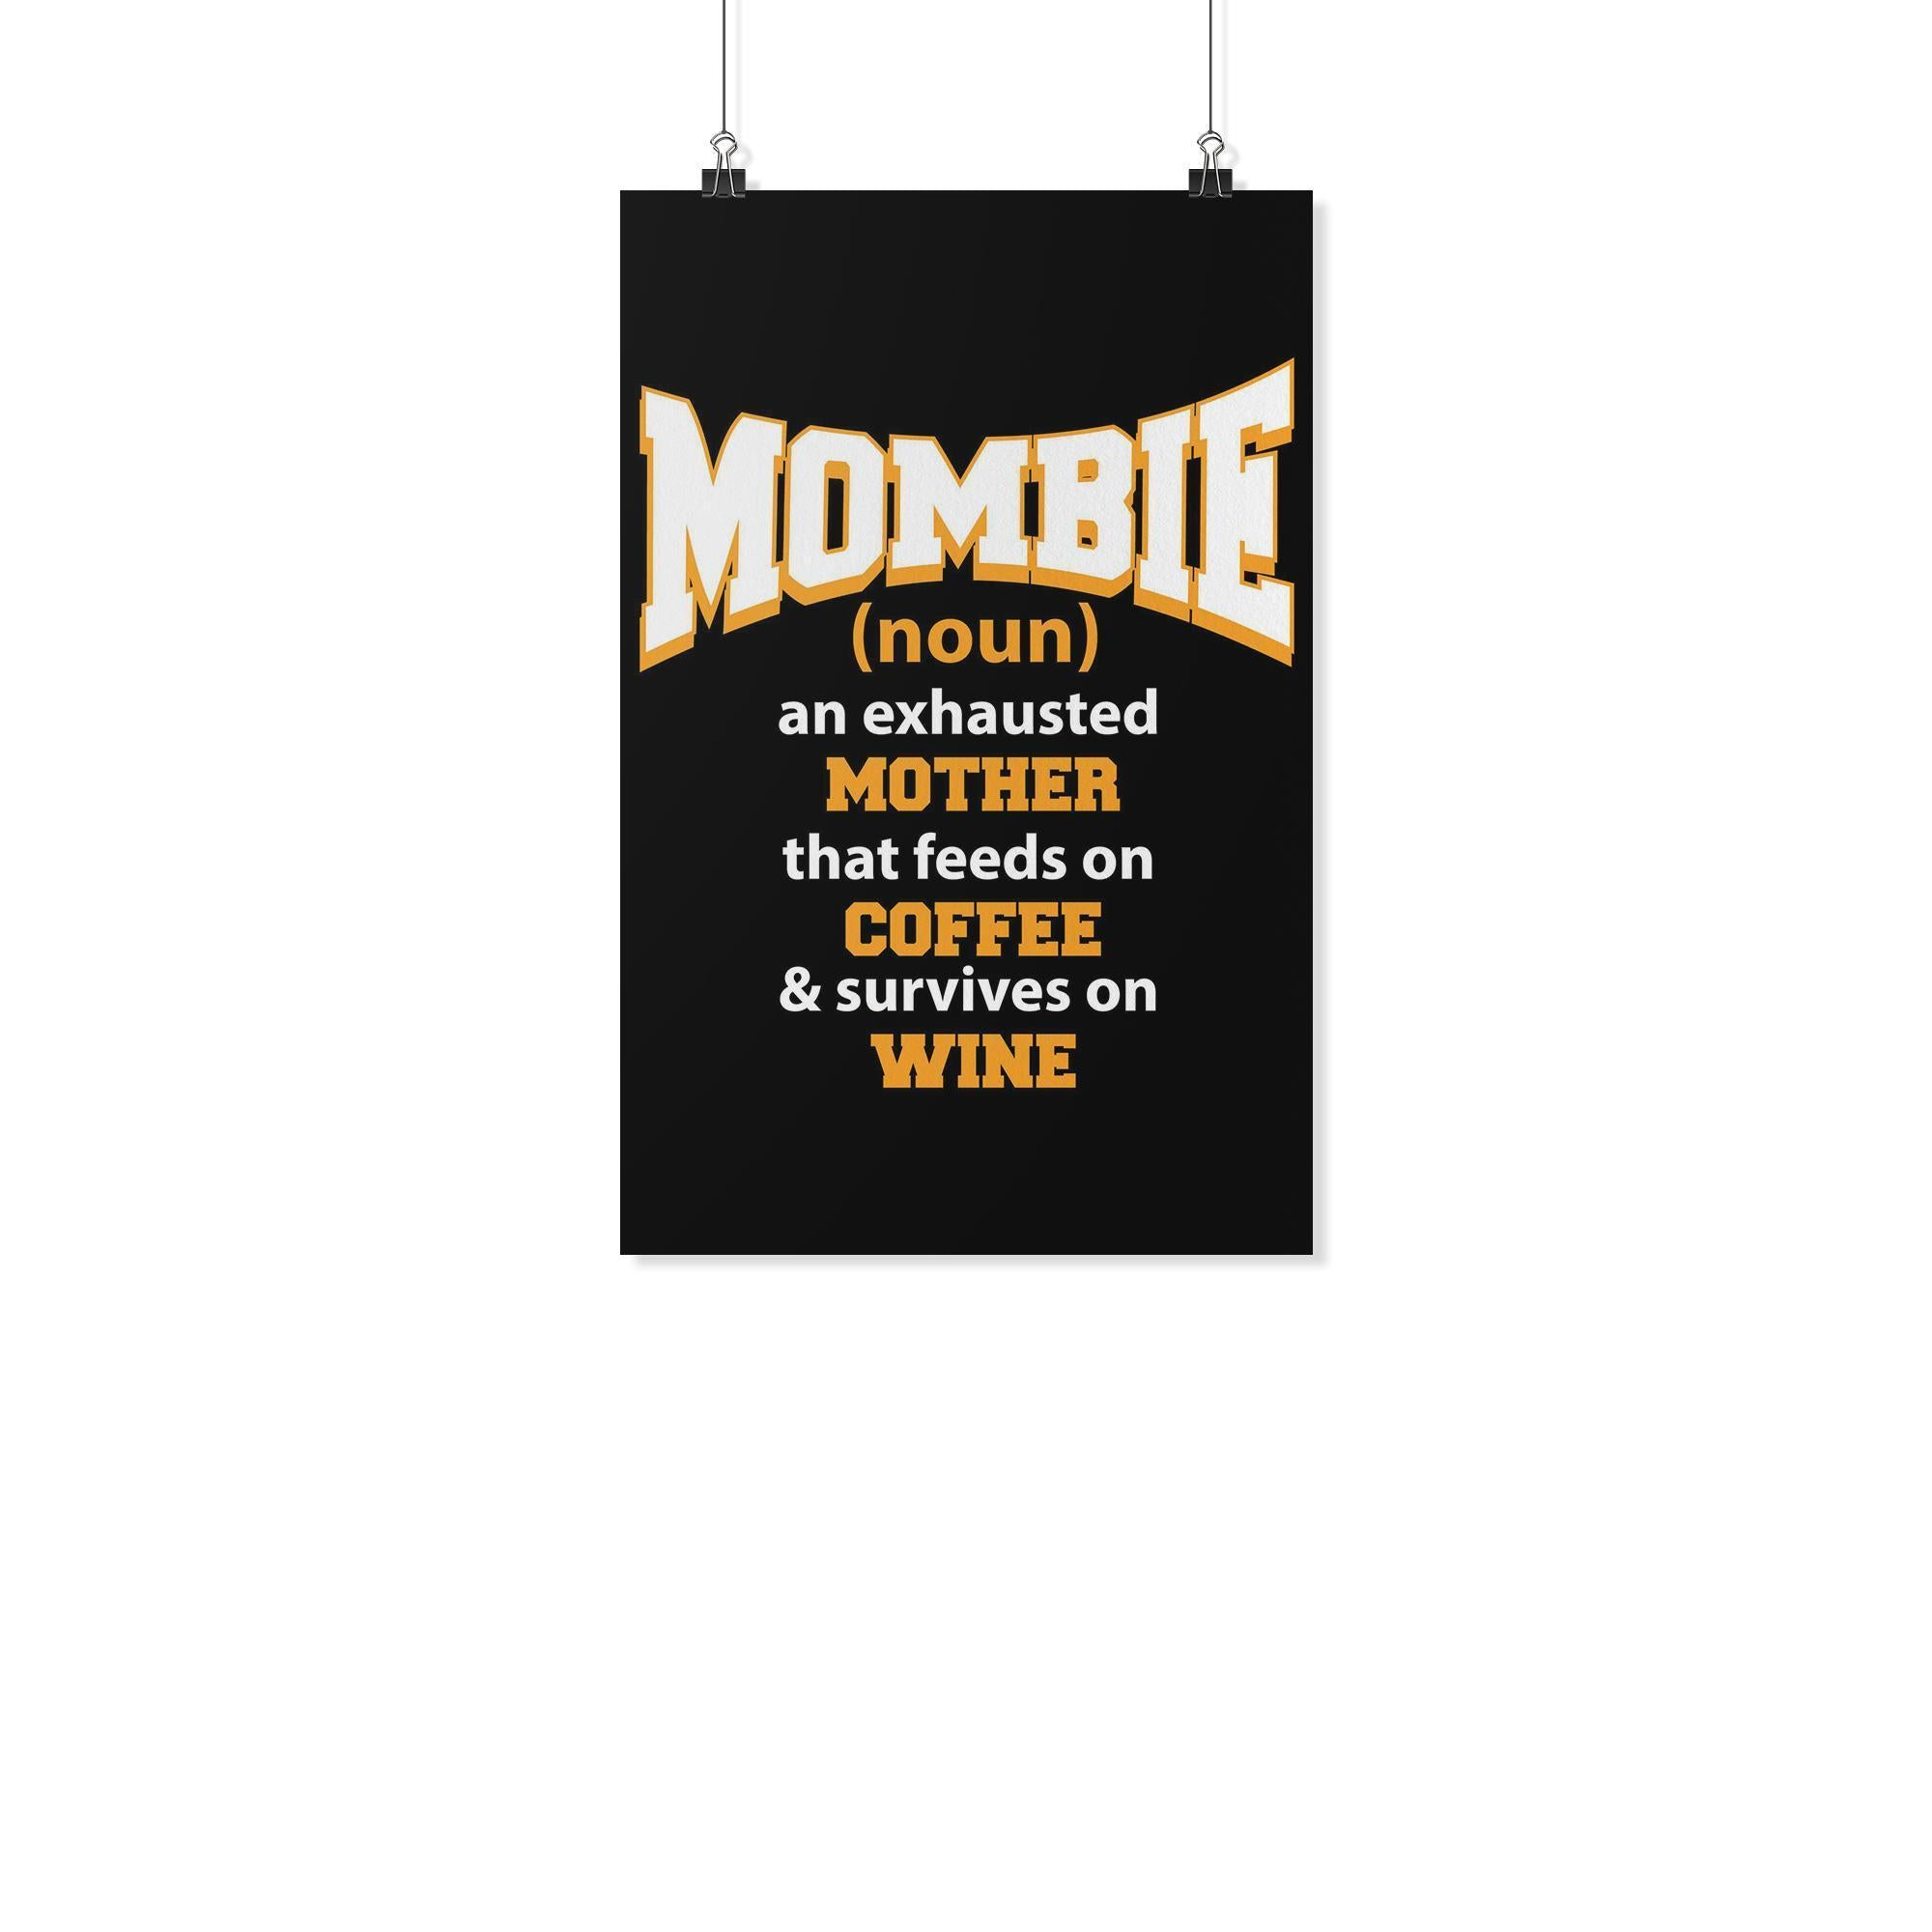 Mombie Exhausted Mother Feeds On Coffee & Survives On Wine Funny Poster Wall Art-Posters 2-11x17-JoyHip.Com